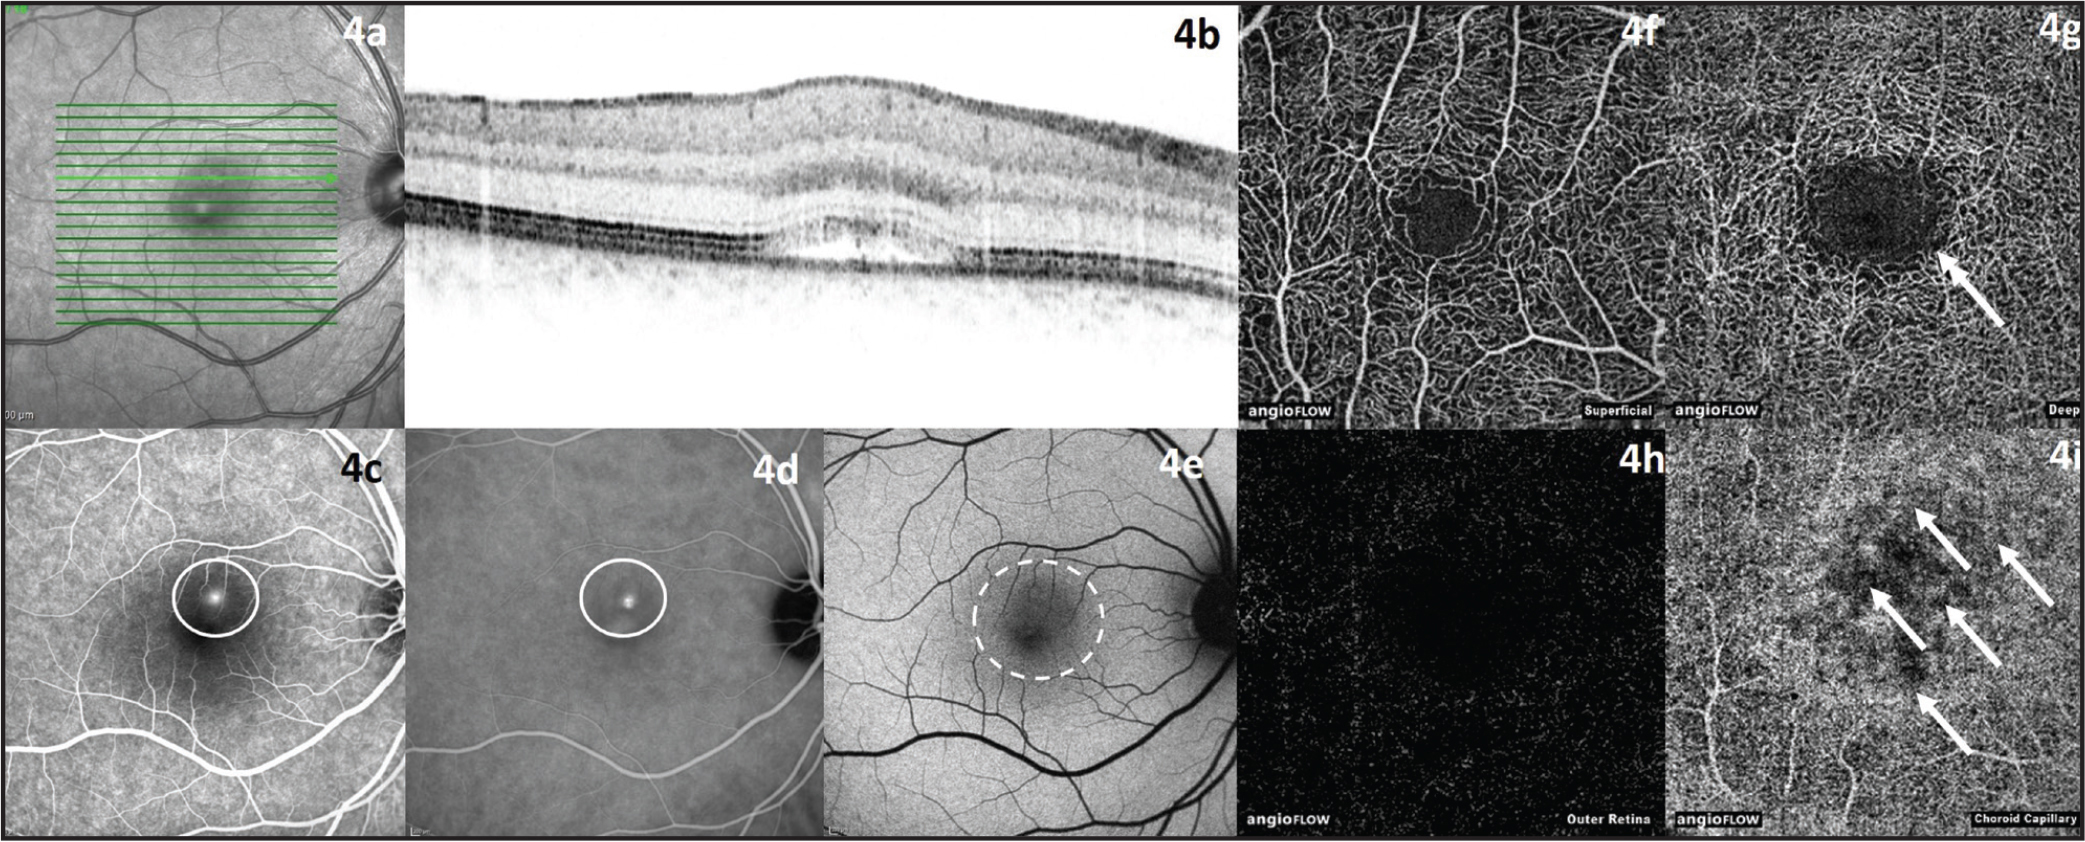 Right eye of a 29-year-old male patient with acute central serous chorioretinopathy. (A, B) Infrared and optical coherence tomography (OCT) image with retinal detachment. (C) Fundus autofluorescence image with leakage point (white circle). (D) Indocyanine green angiography image with leakage point (white circle). (E) Fundus autofluorescence image with discernable retinal detachment (white dashed circle). (F) OCT angiography (OCTA) image of superficial retinal vessels. (G) OCTA image of deep retinal vessels with central rarefication of vessels and discernable area with detached retina (white arrow). (H) OCTA image of outer retina. (I) OCTA image of choroid capillaries with abnormal flow pattern (white arrows).